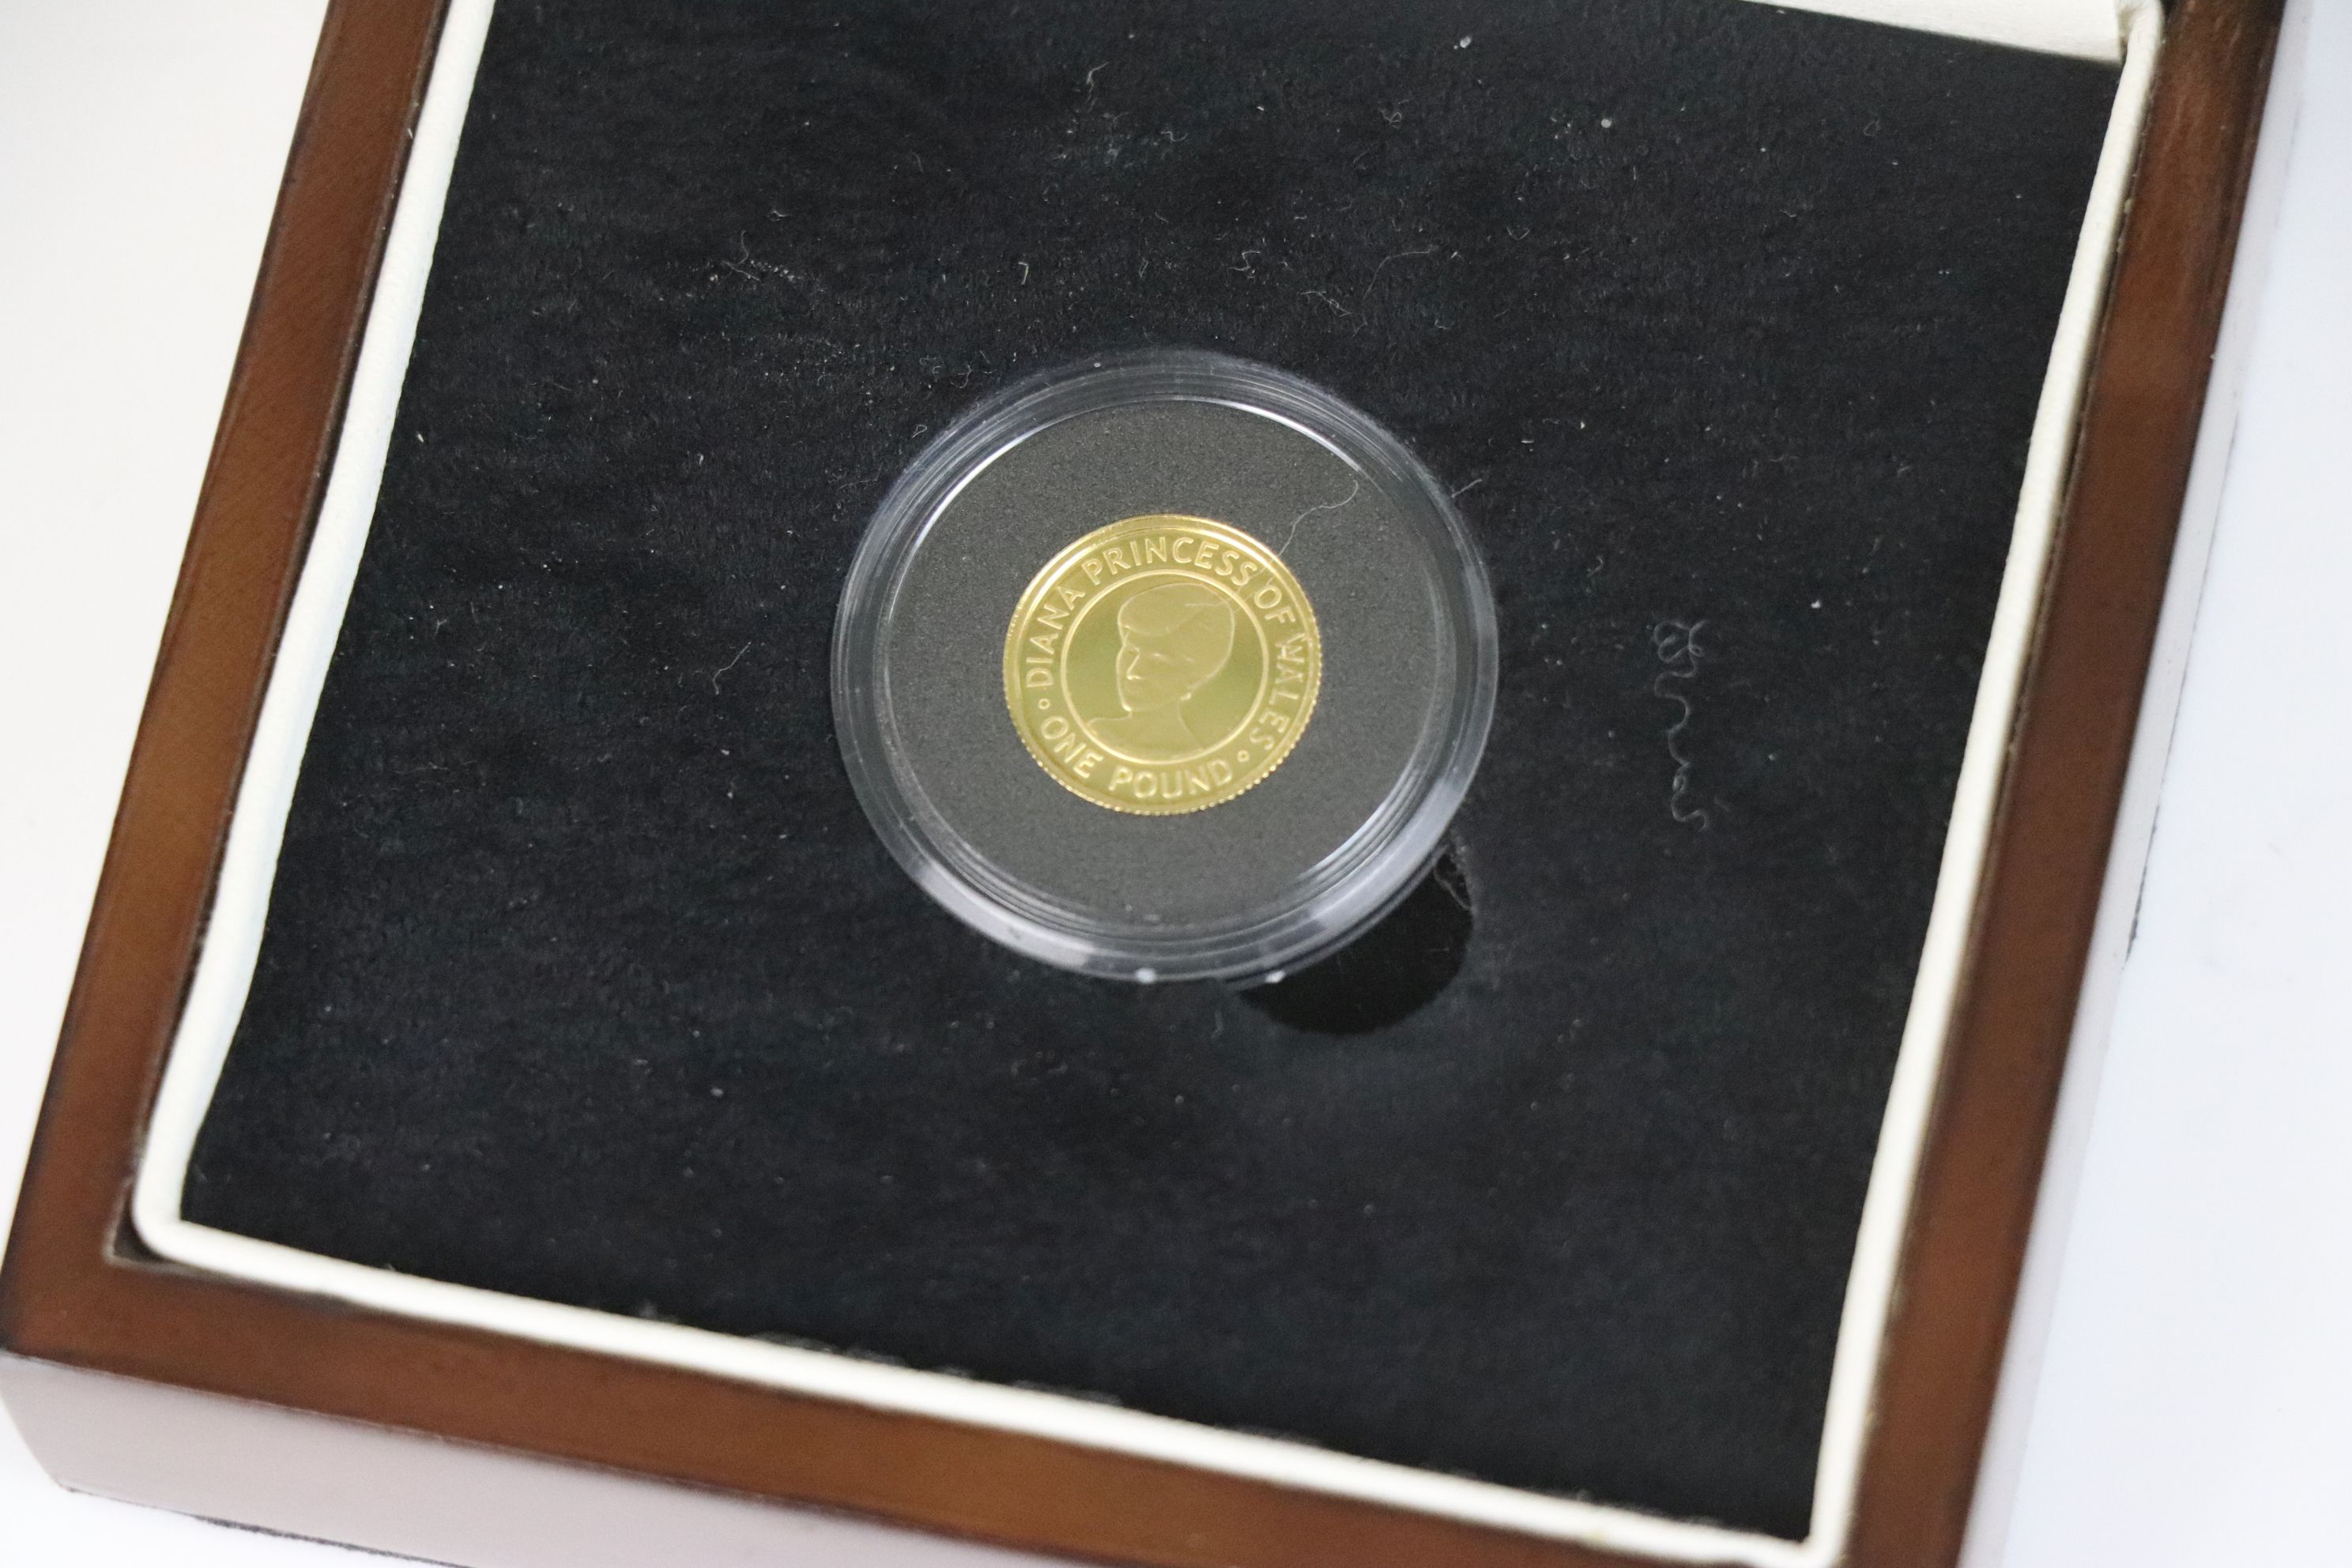 A Queen Elizabeth II Bailiwick of Jersey Diana Princess of Wales Commemorative £1 gold coin dated - Image 2 of 4